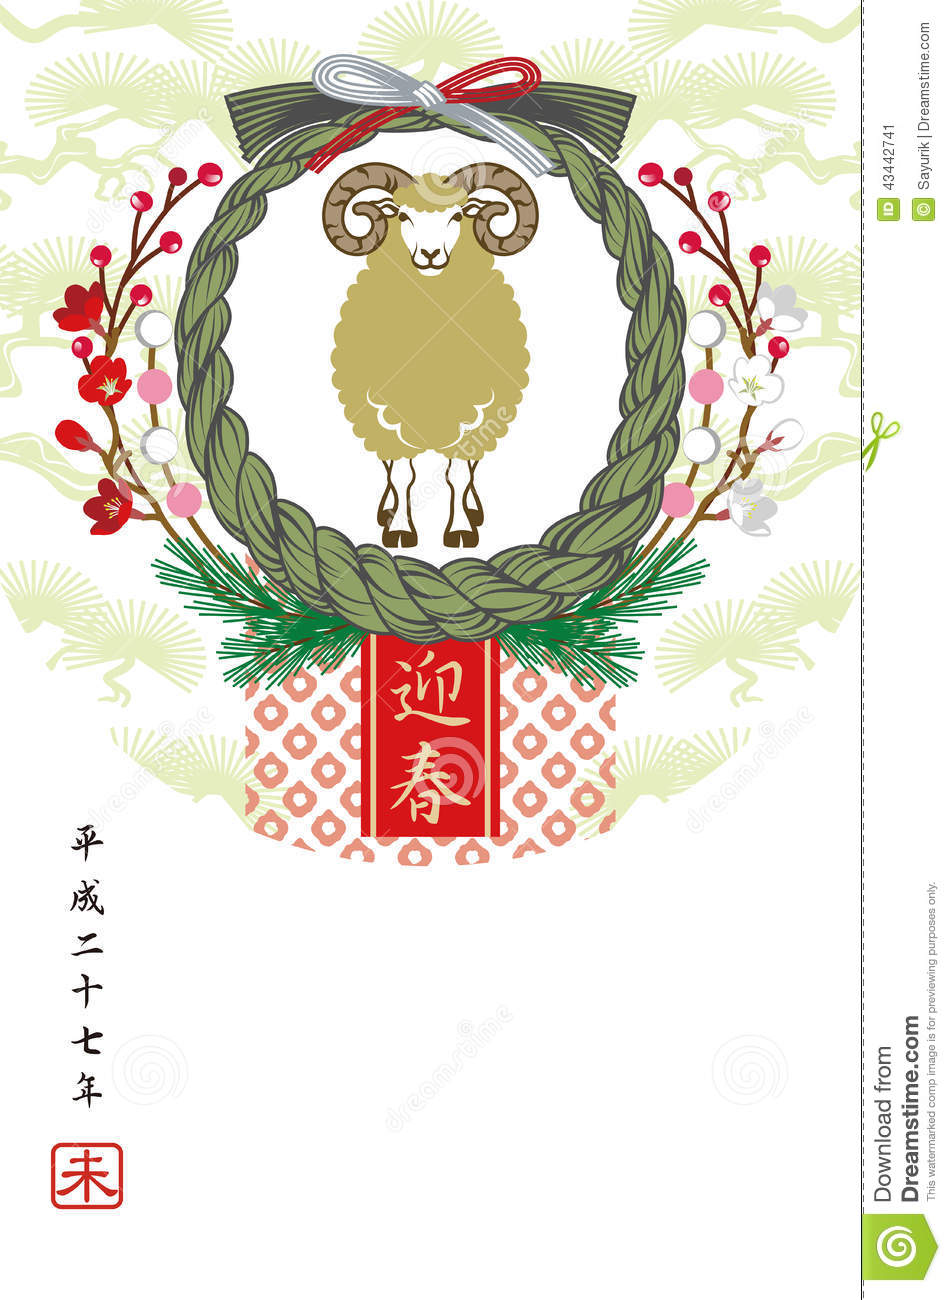 japanese new year greeting card for the year of the rooster stock